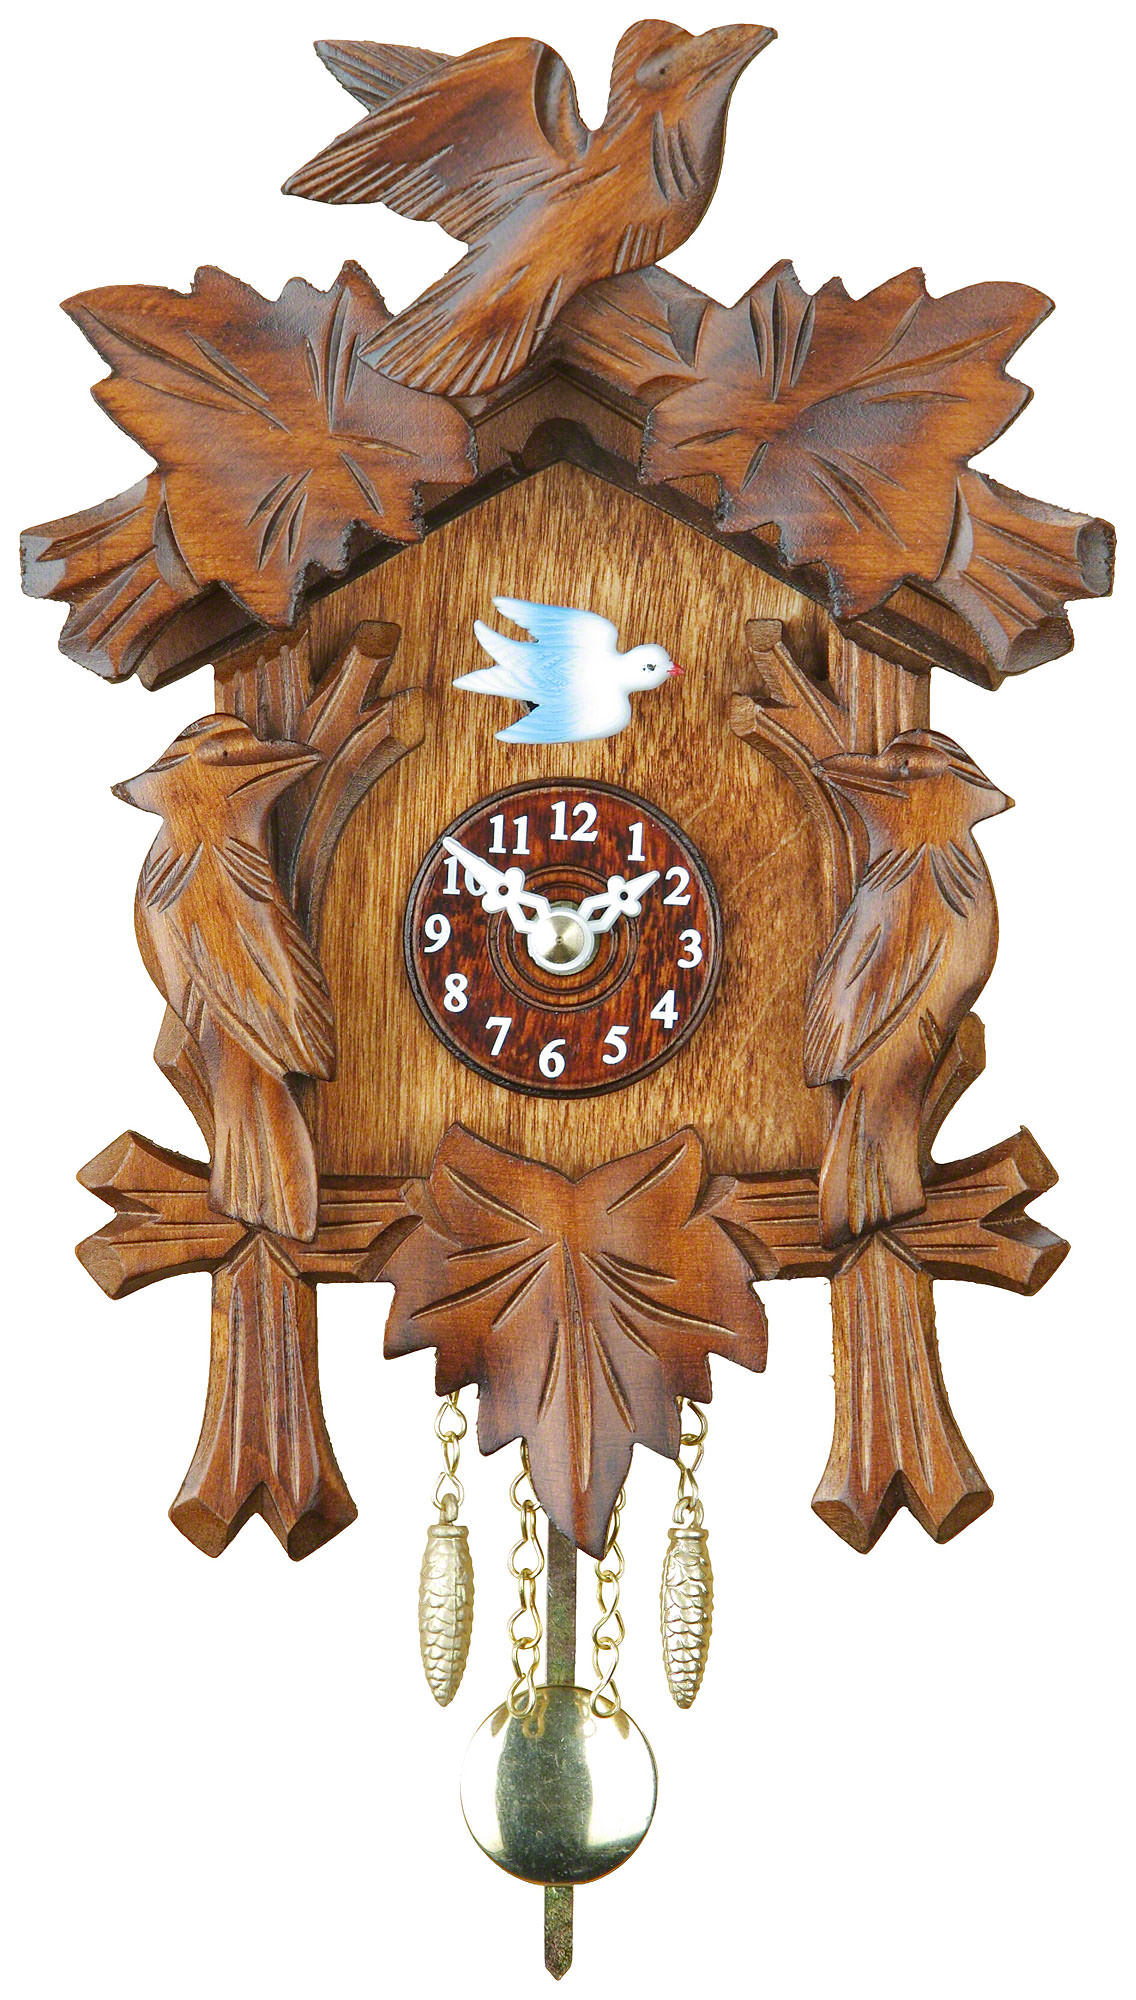 Black forest pendulum clock quartz movement 17cm by trenkle uhren 03472pqnu - Cuckoo clock pendulum ...